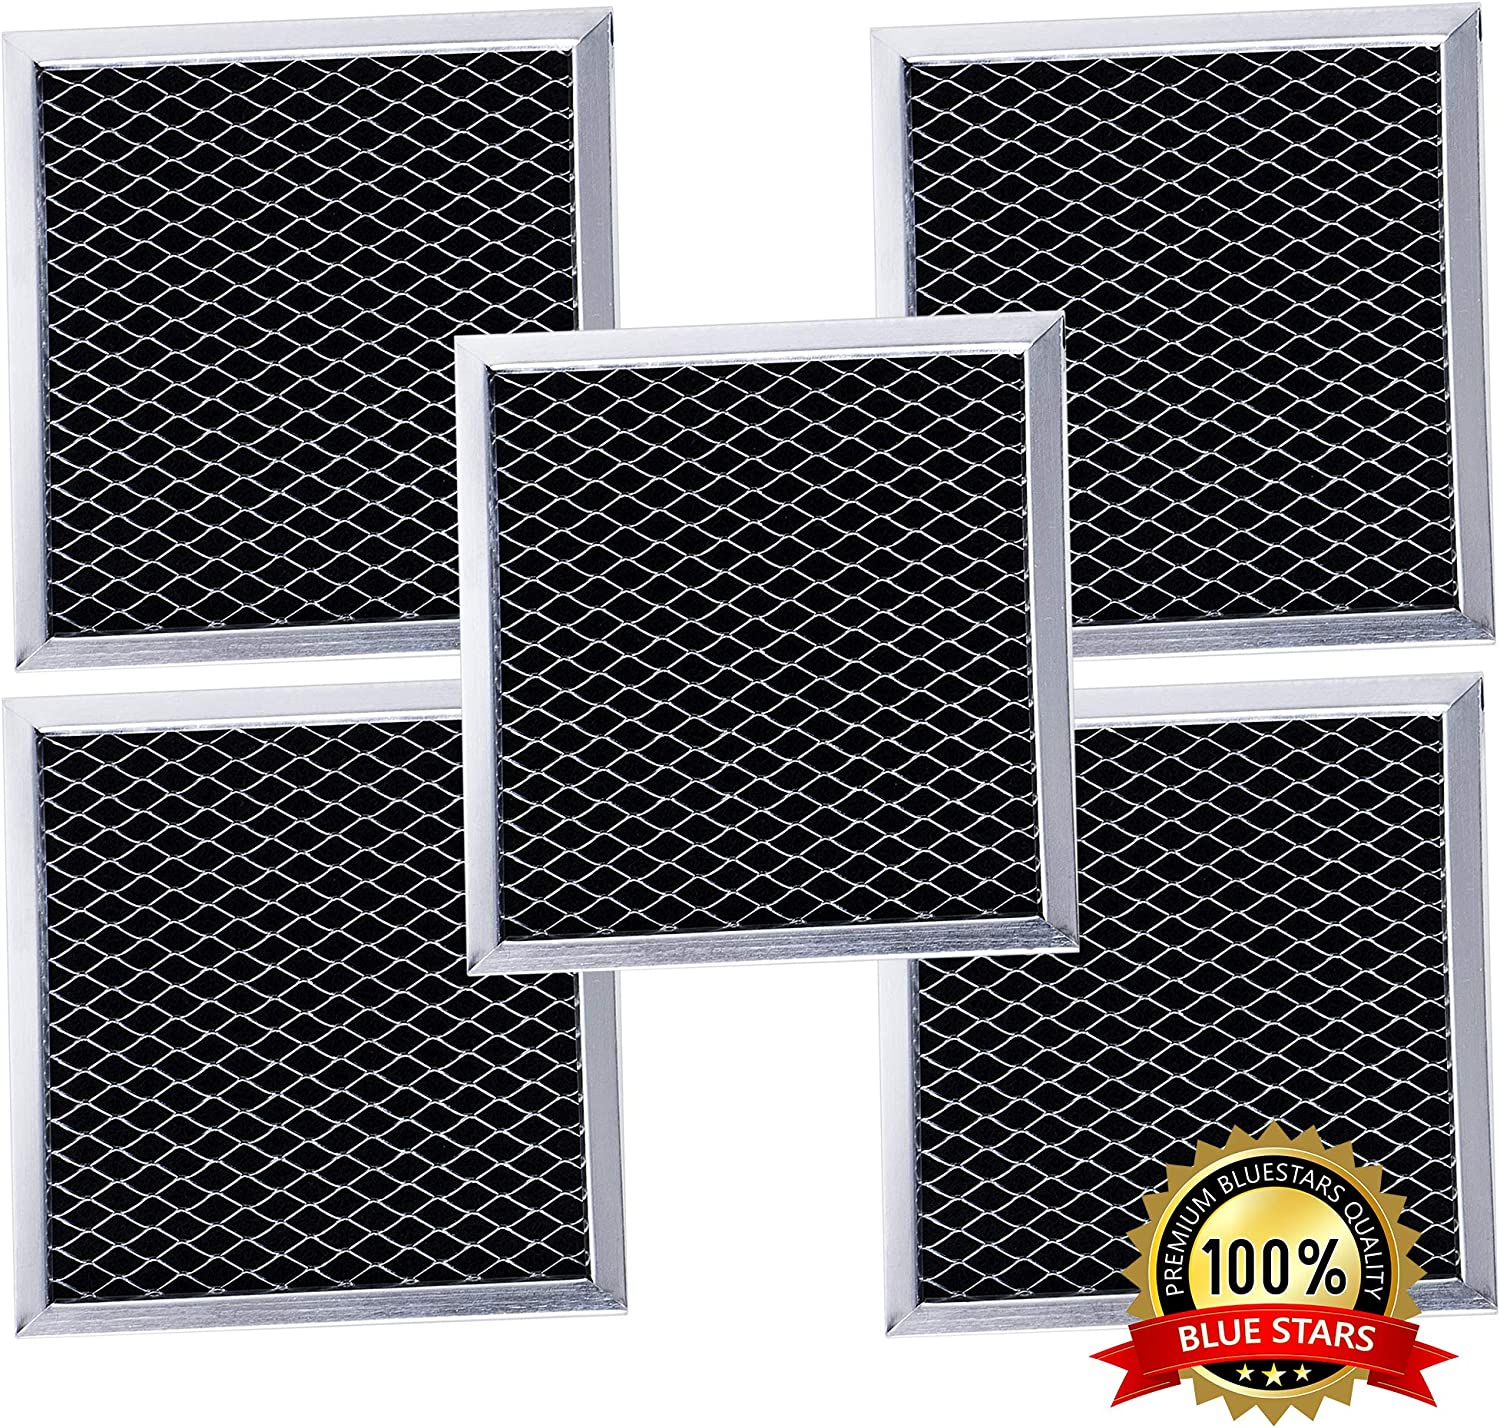 Ultra Durable 8206230A Microwave Charcoal Filter Replacement part by Blue Stars – Exact Fit For Whirlpool & Maytag Microwaves – Replaces 8206230 AP4299744 PS1871363 - PACK OF 5